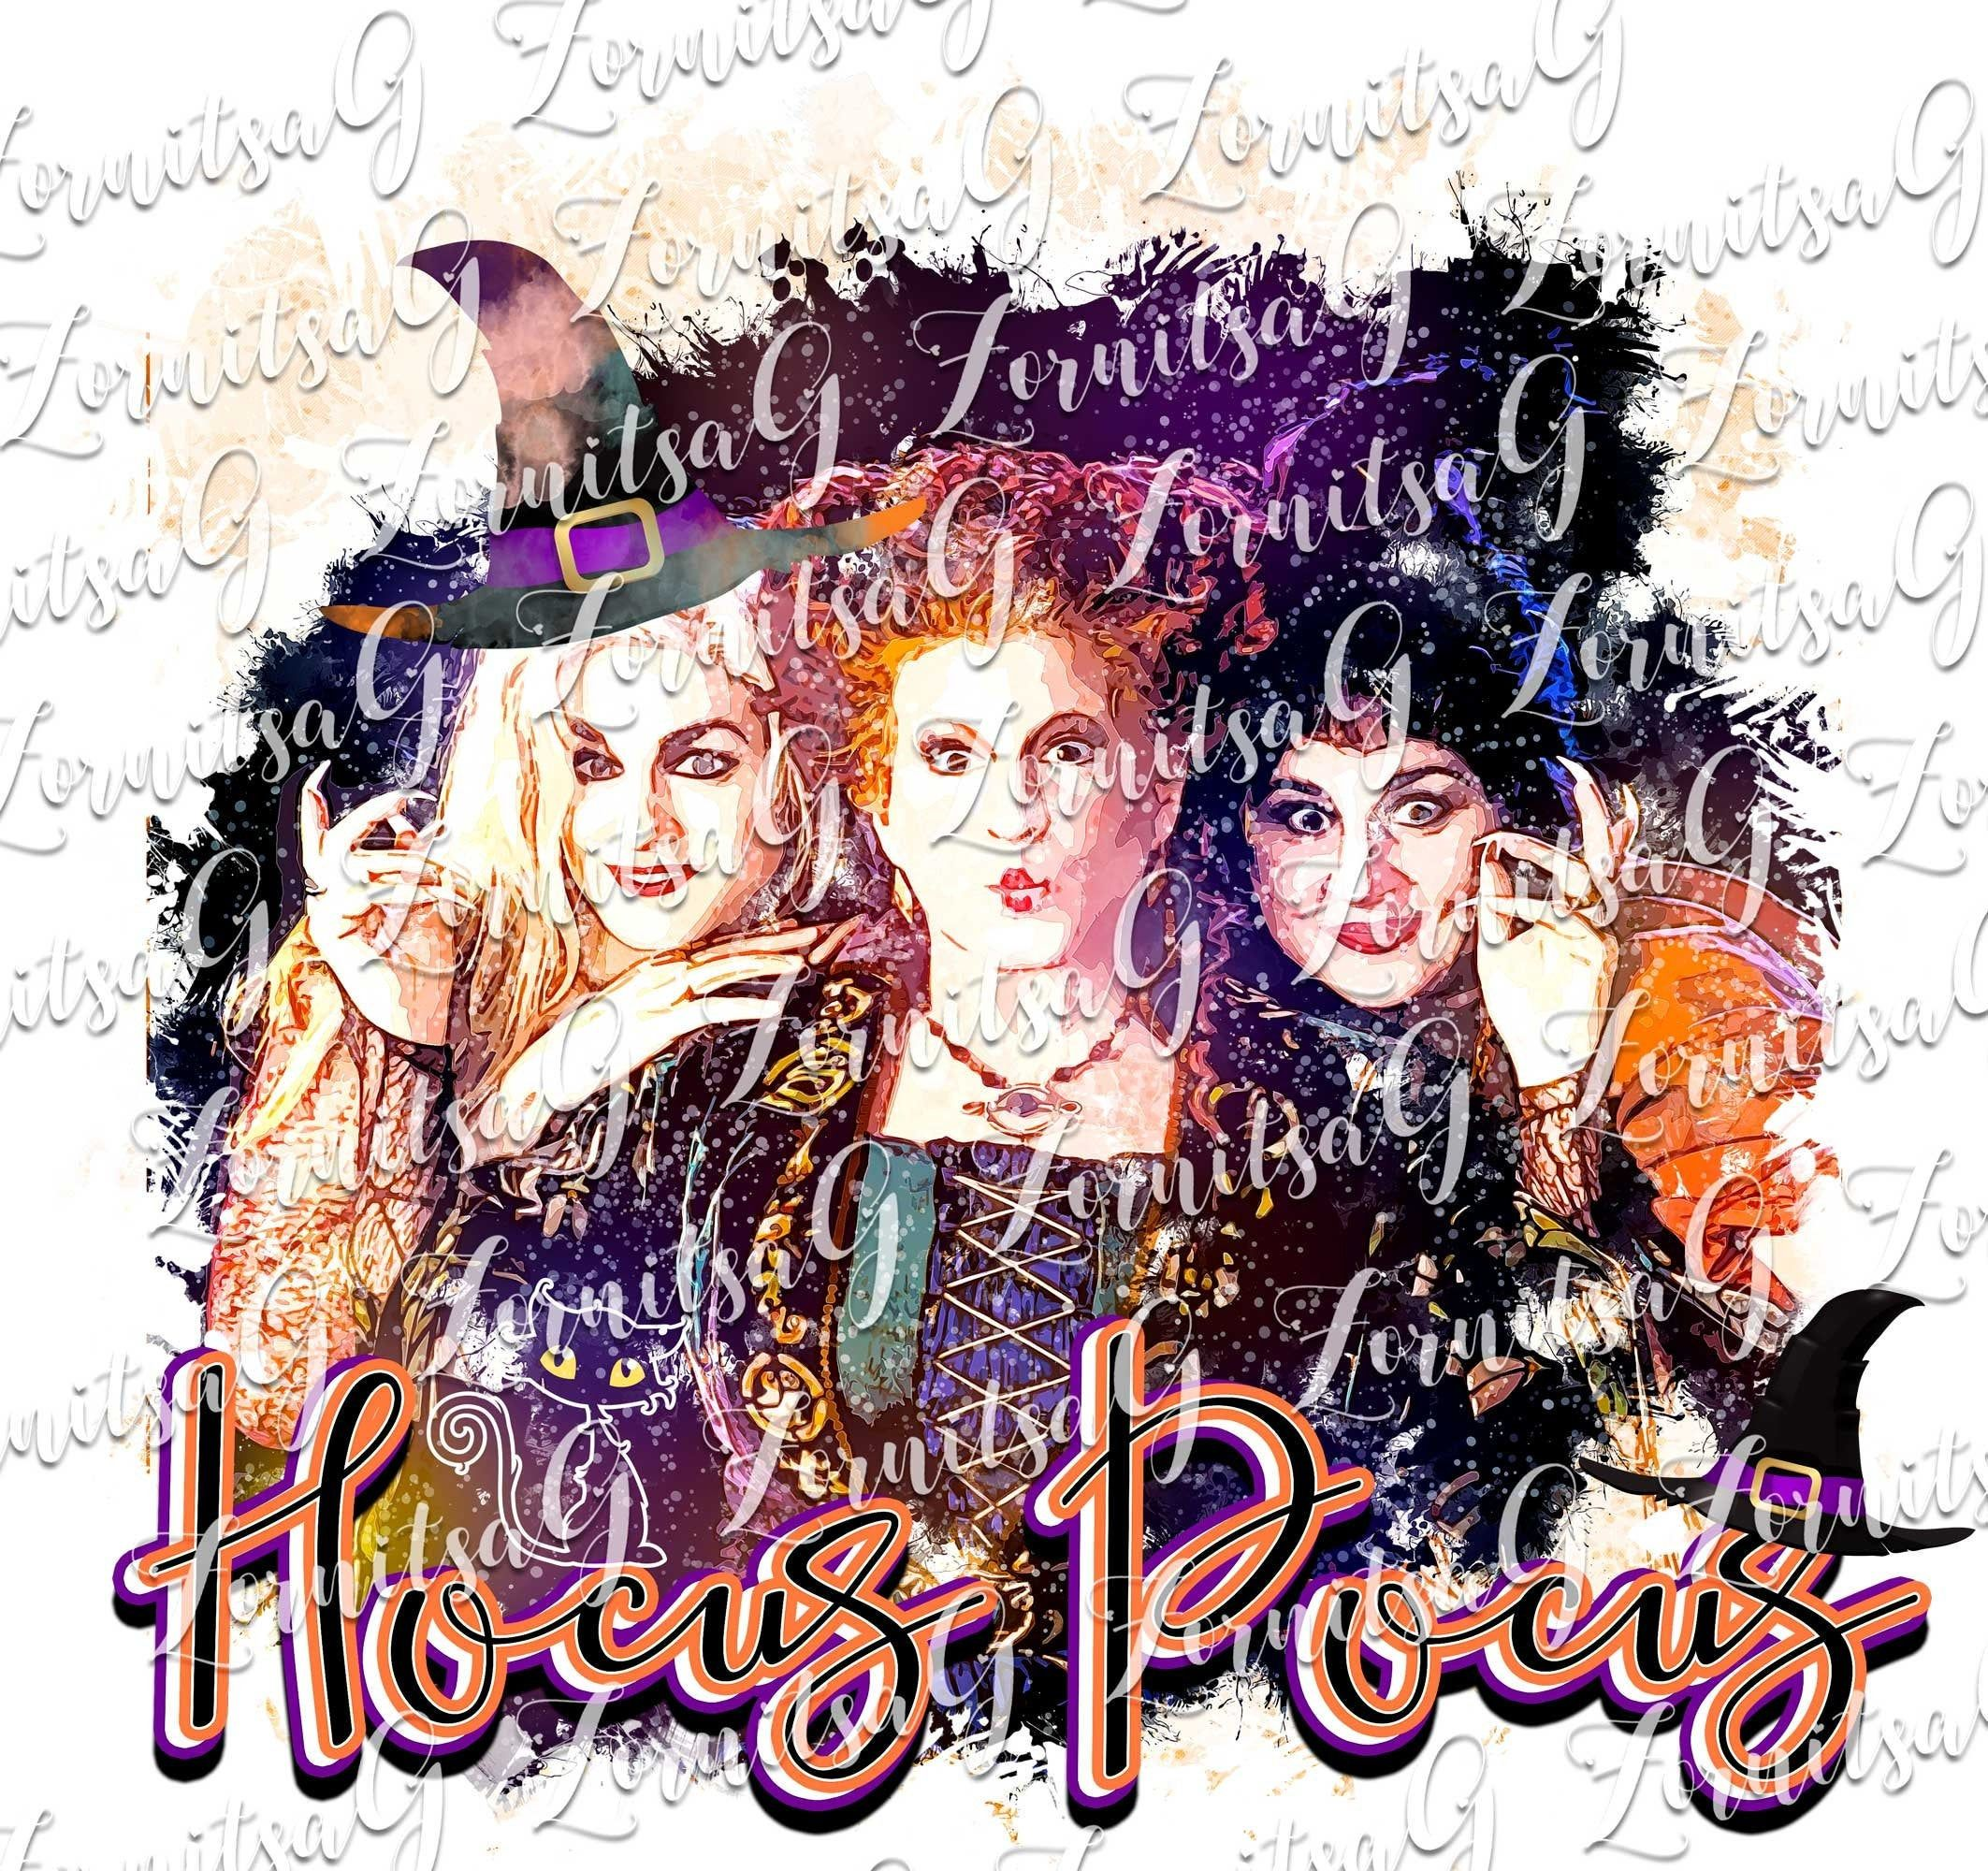 Hocus Pocus Png Sublimation Designs Download Https Etsy Me 2bksiiy Fallsublimation Sublimationdesigns Heat Halloween Clipart Witch Design Halloween Images